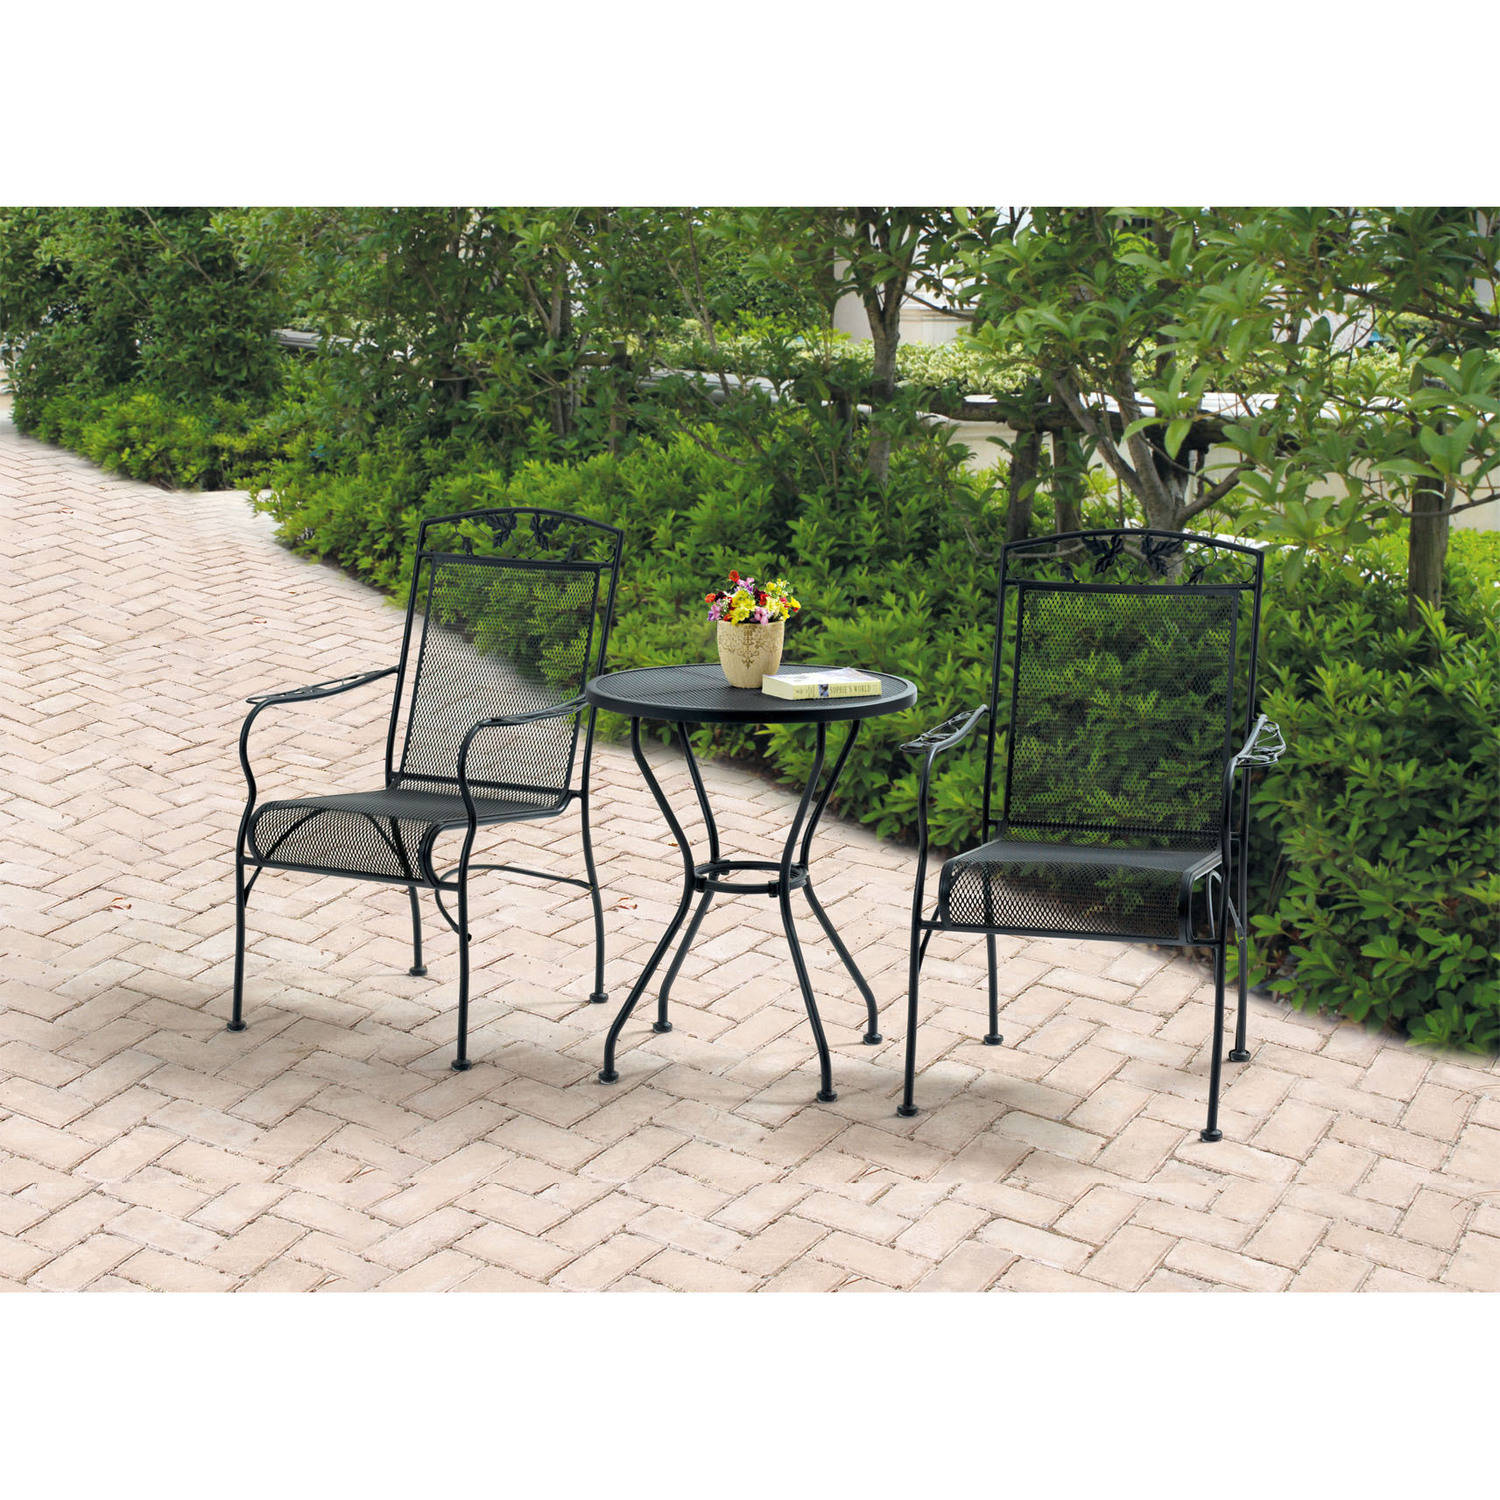 Better Homes and Gardens Rose 3 Piece Outdoor Bistro Set - Walmart.com